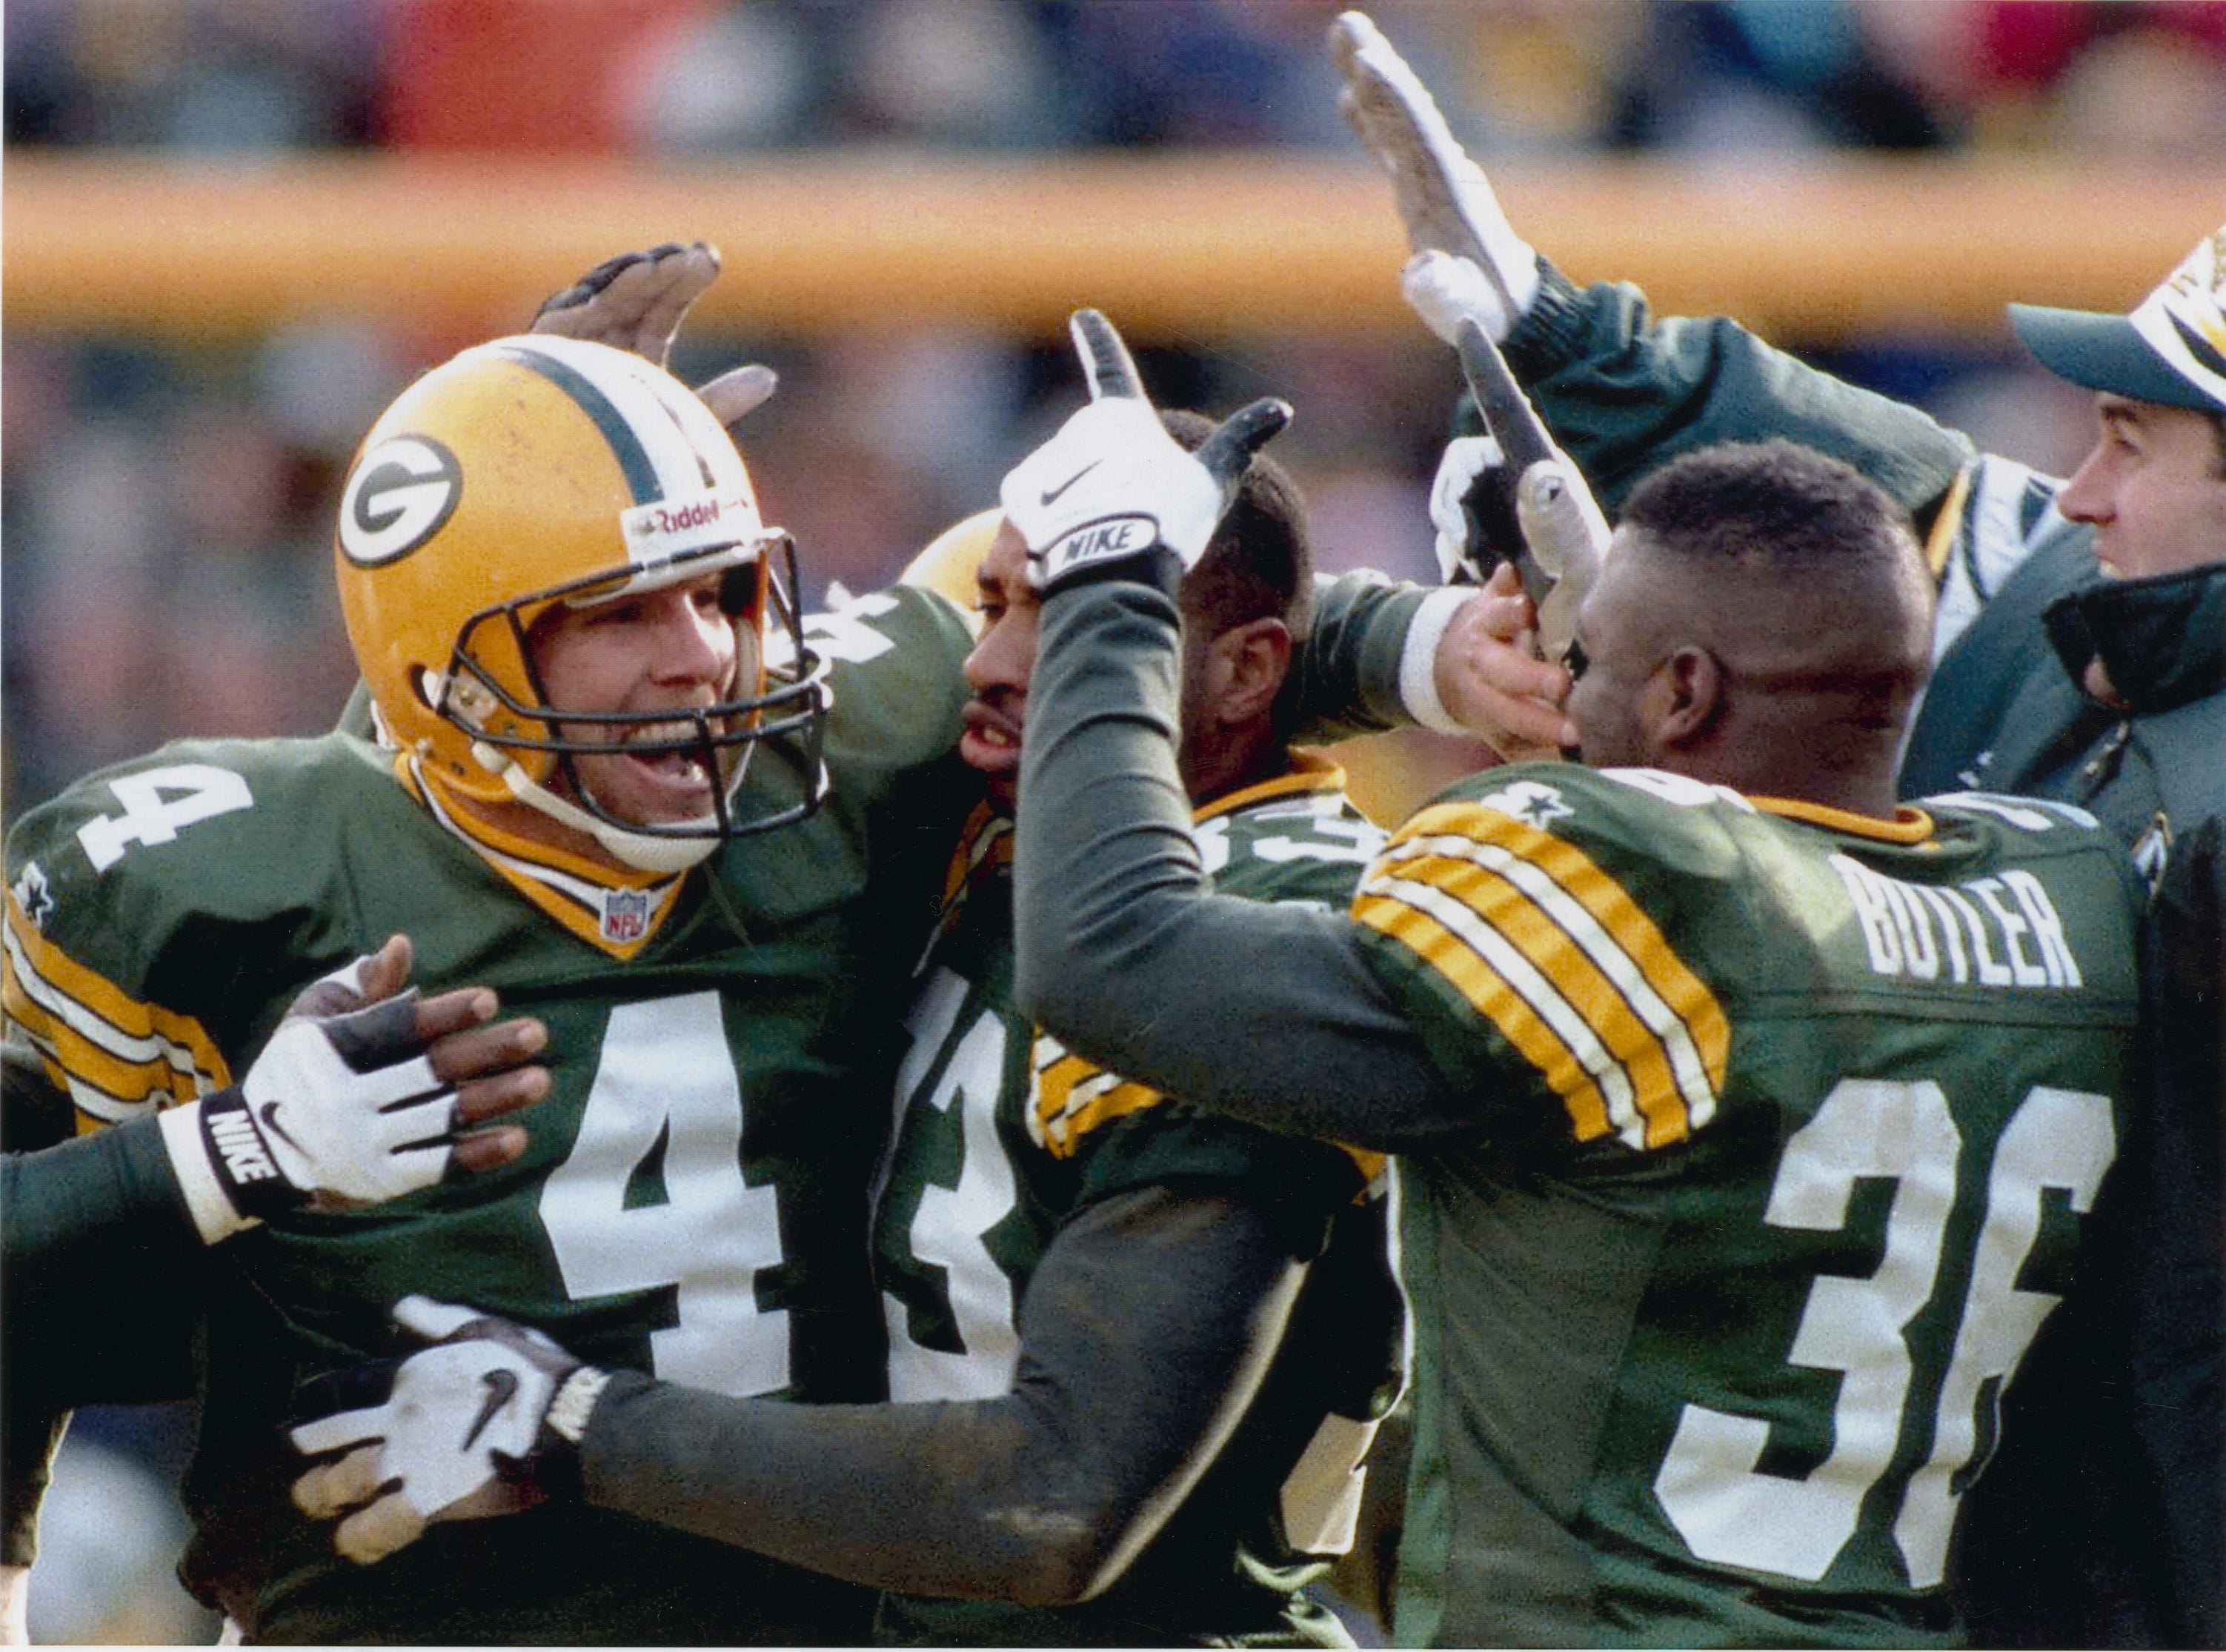 Flashback 1995: Brett Favre Overcomes Injuries to Have One of His Best Career Games Vs. Bears